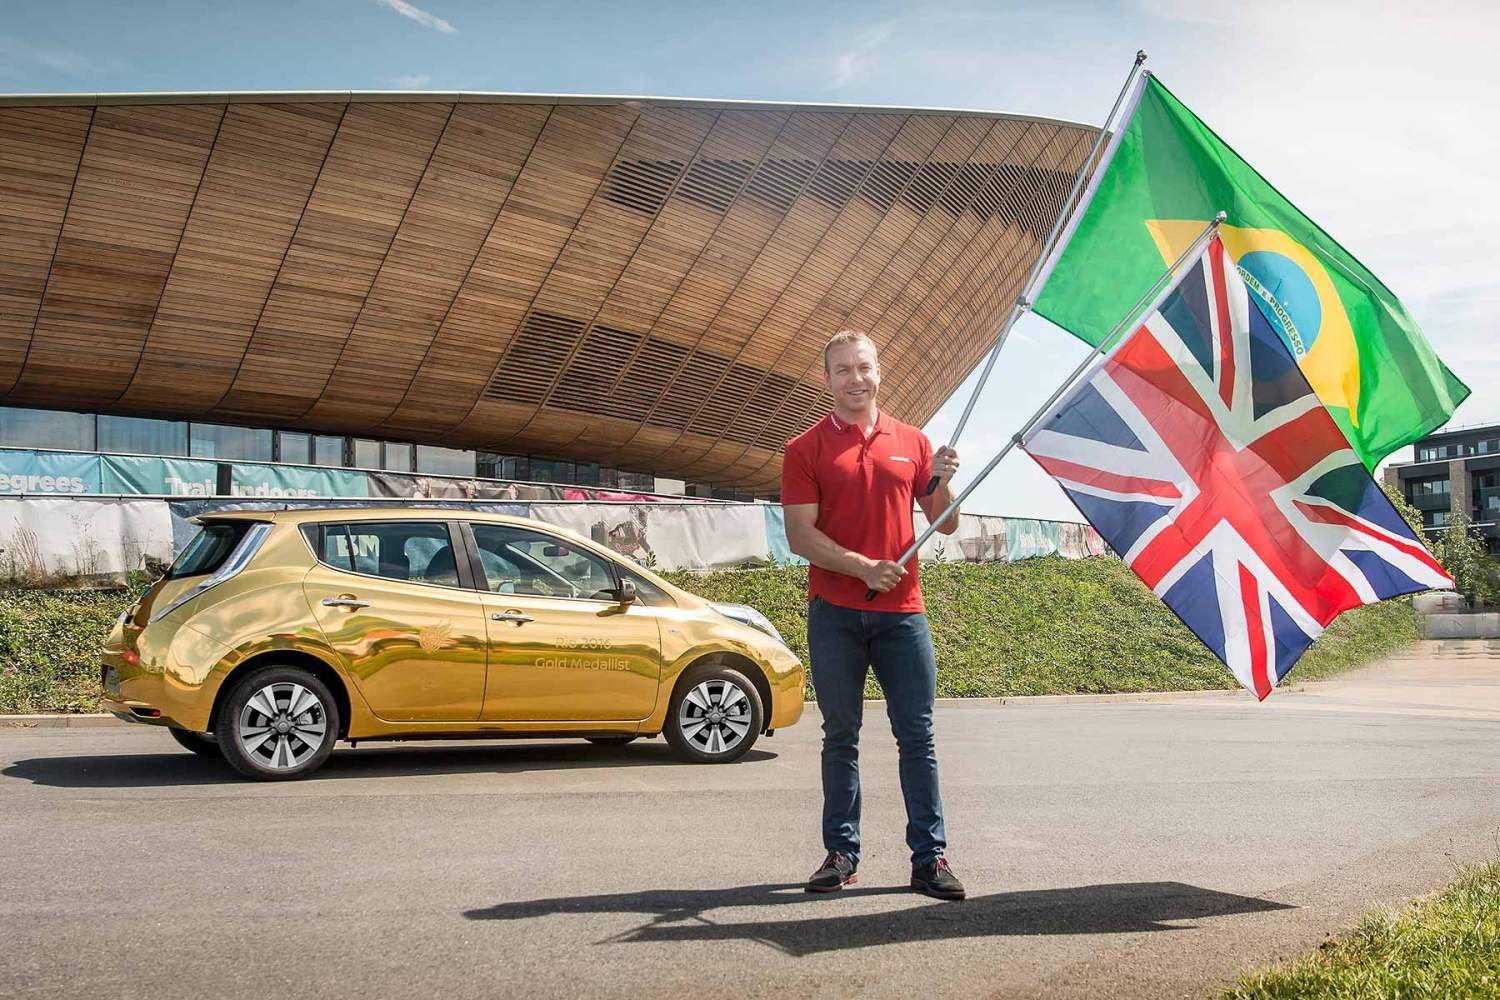 Nissan gold LEAF Sir Chris Hoy